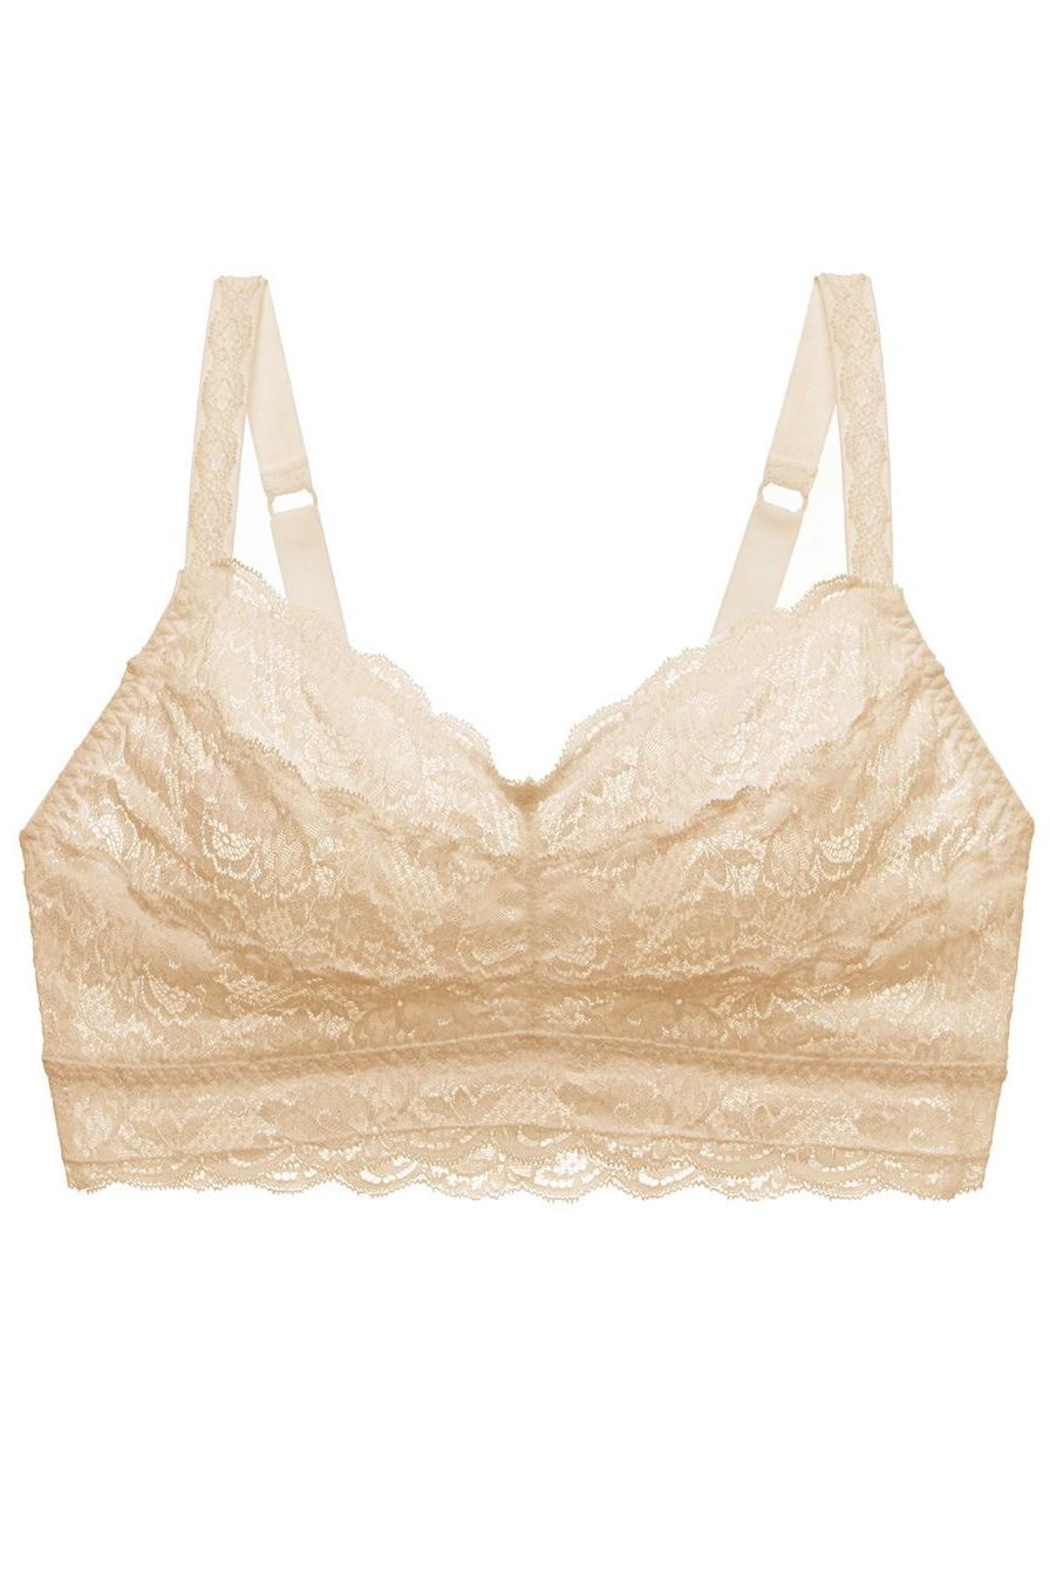 Cosabella Curvy Full-Bust Bralette - Back Cropped Image